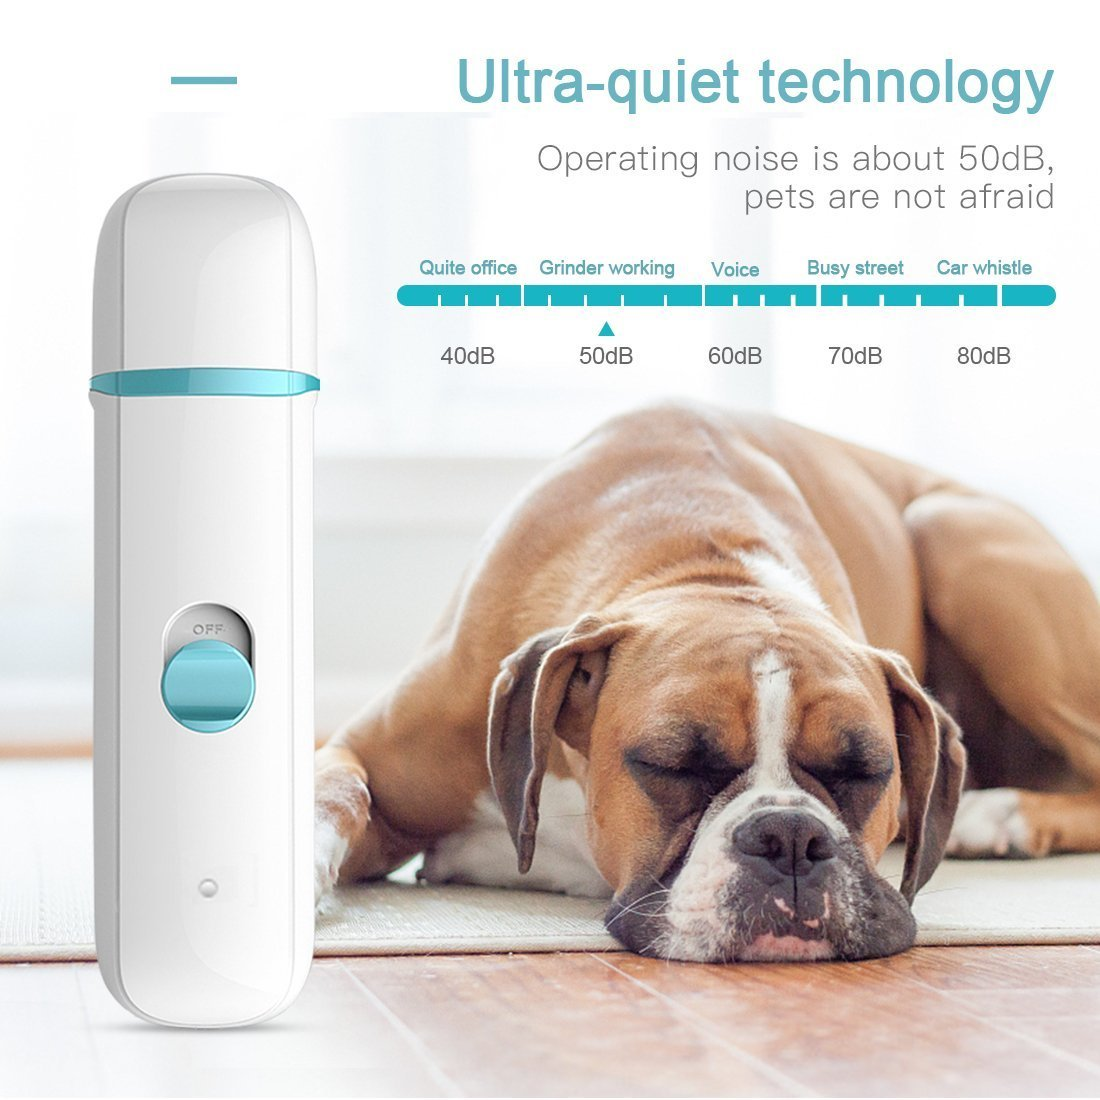 DIGDAN Dog Nail Grinder, Electric Pet Nail Grinder with USB Fast Charging for Gentle Painless Paws Grooming, Portable Low Noise Nail Clippers for Dogs, Cats and Other Animal Paws by DIGDAN (Image #5)